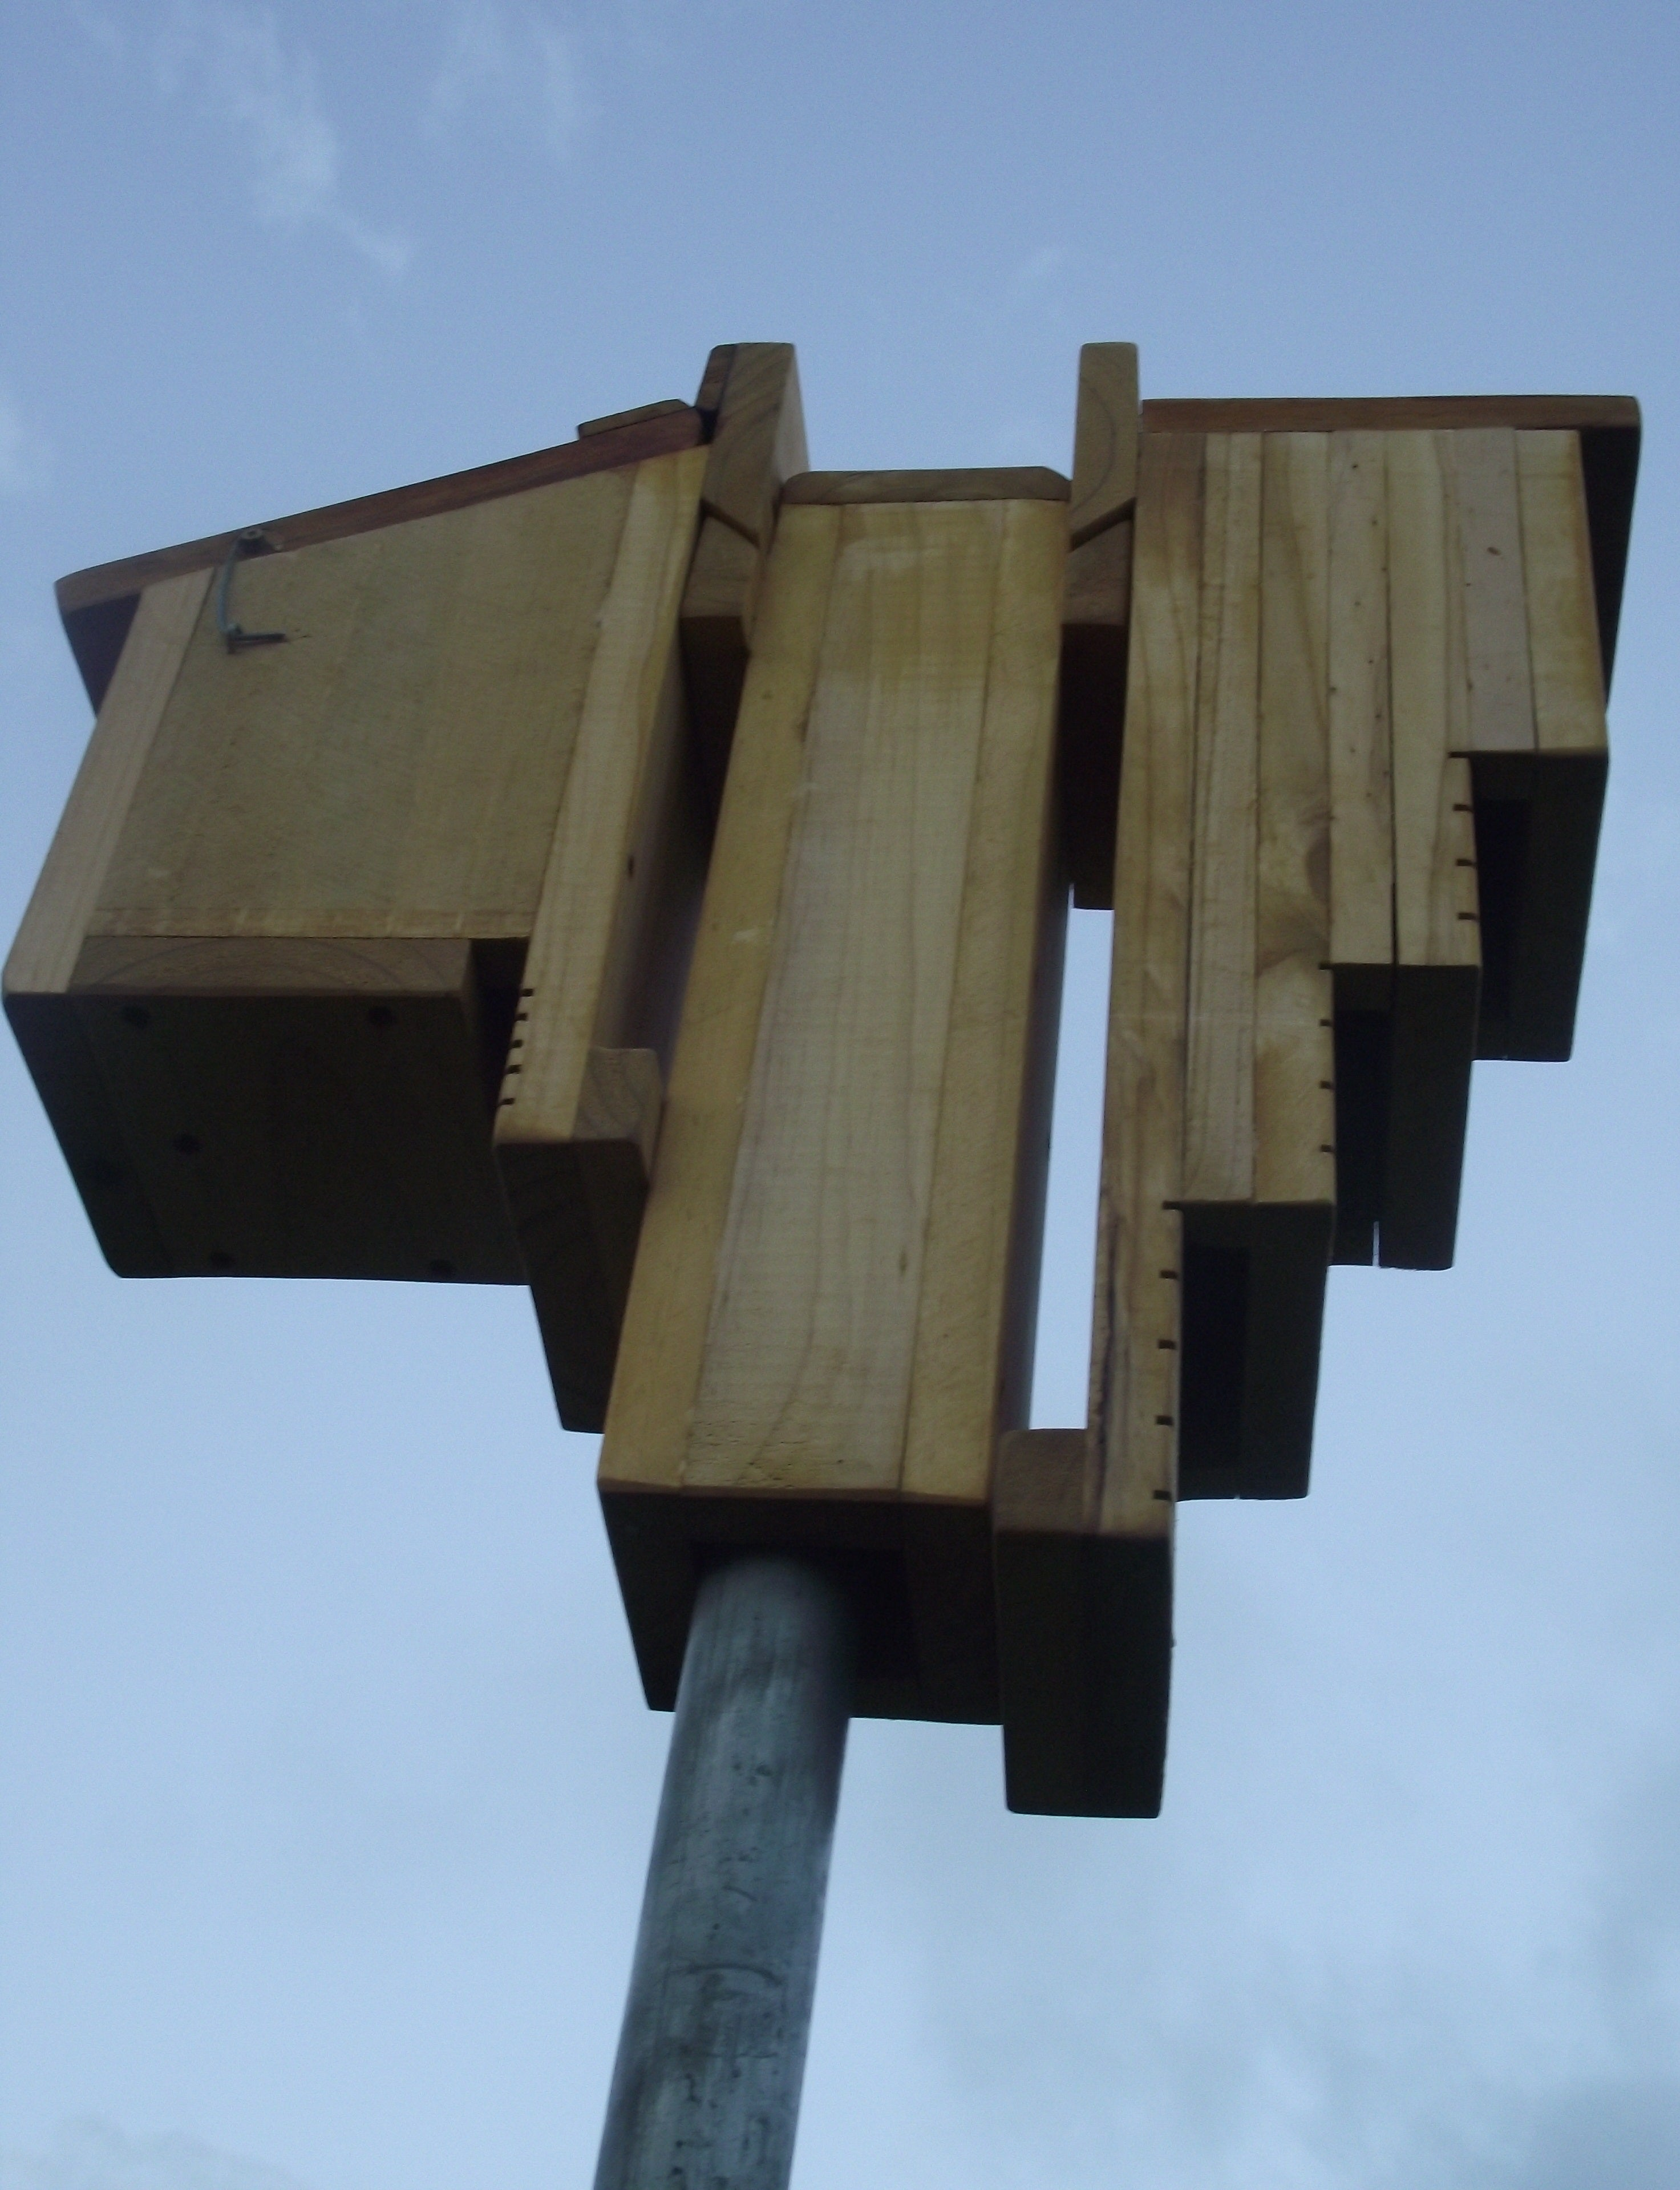 Creative Woodcraft Bat Roosting Boxes Installed using pole mounting bracket 2